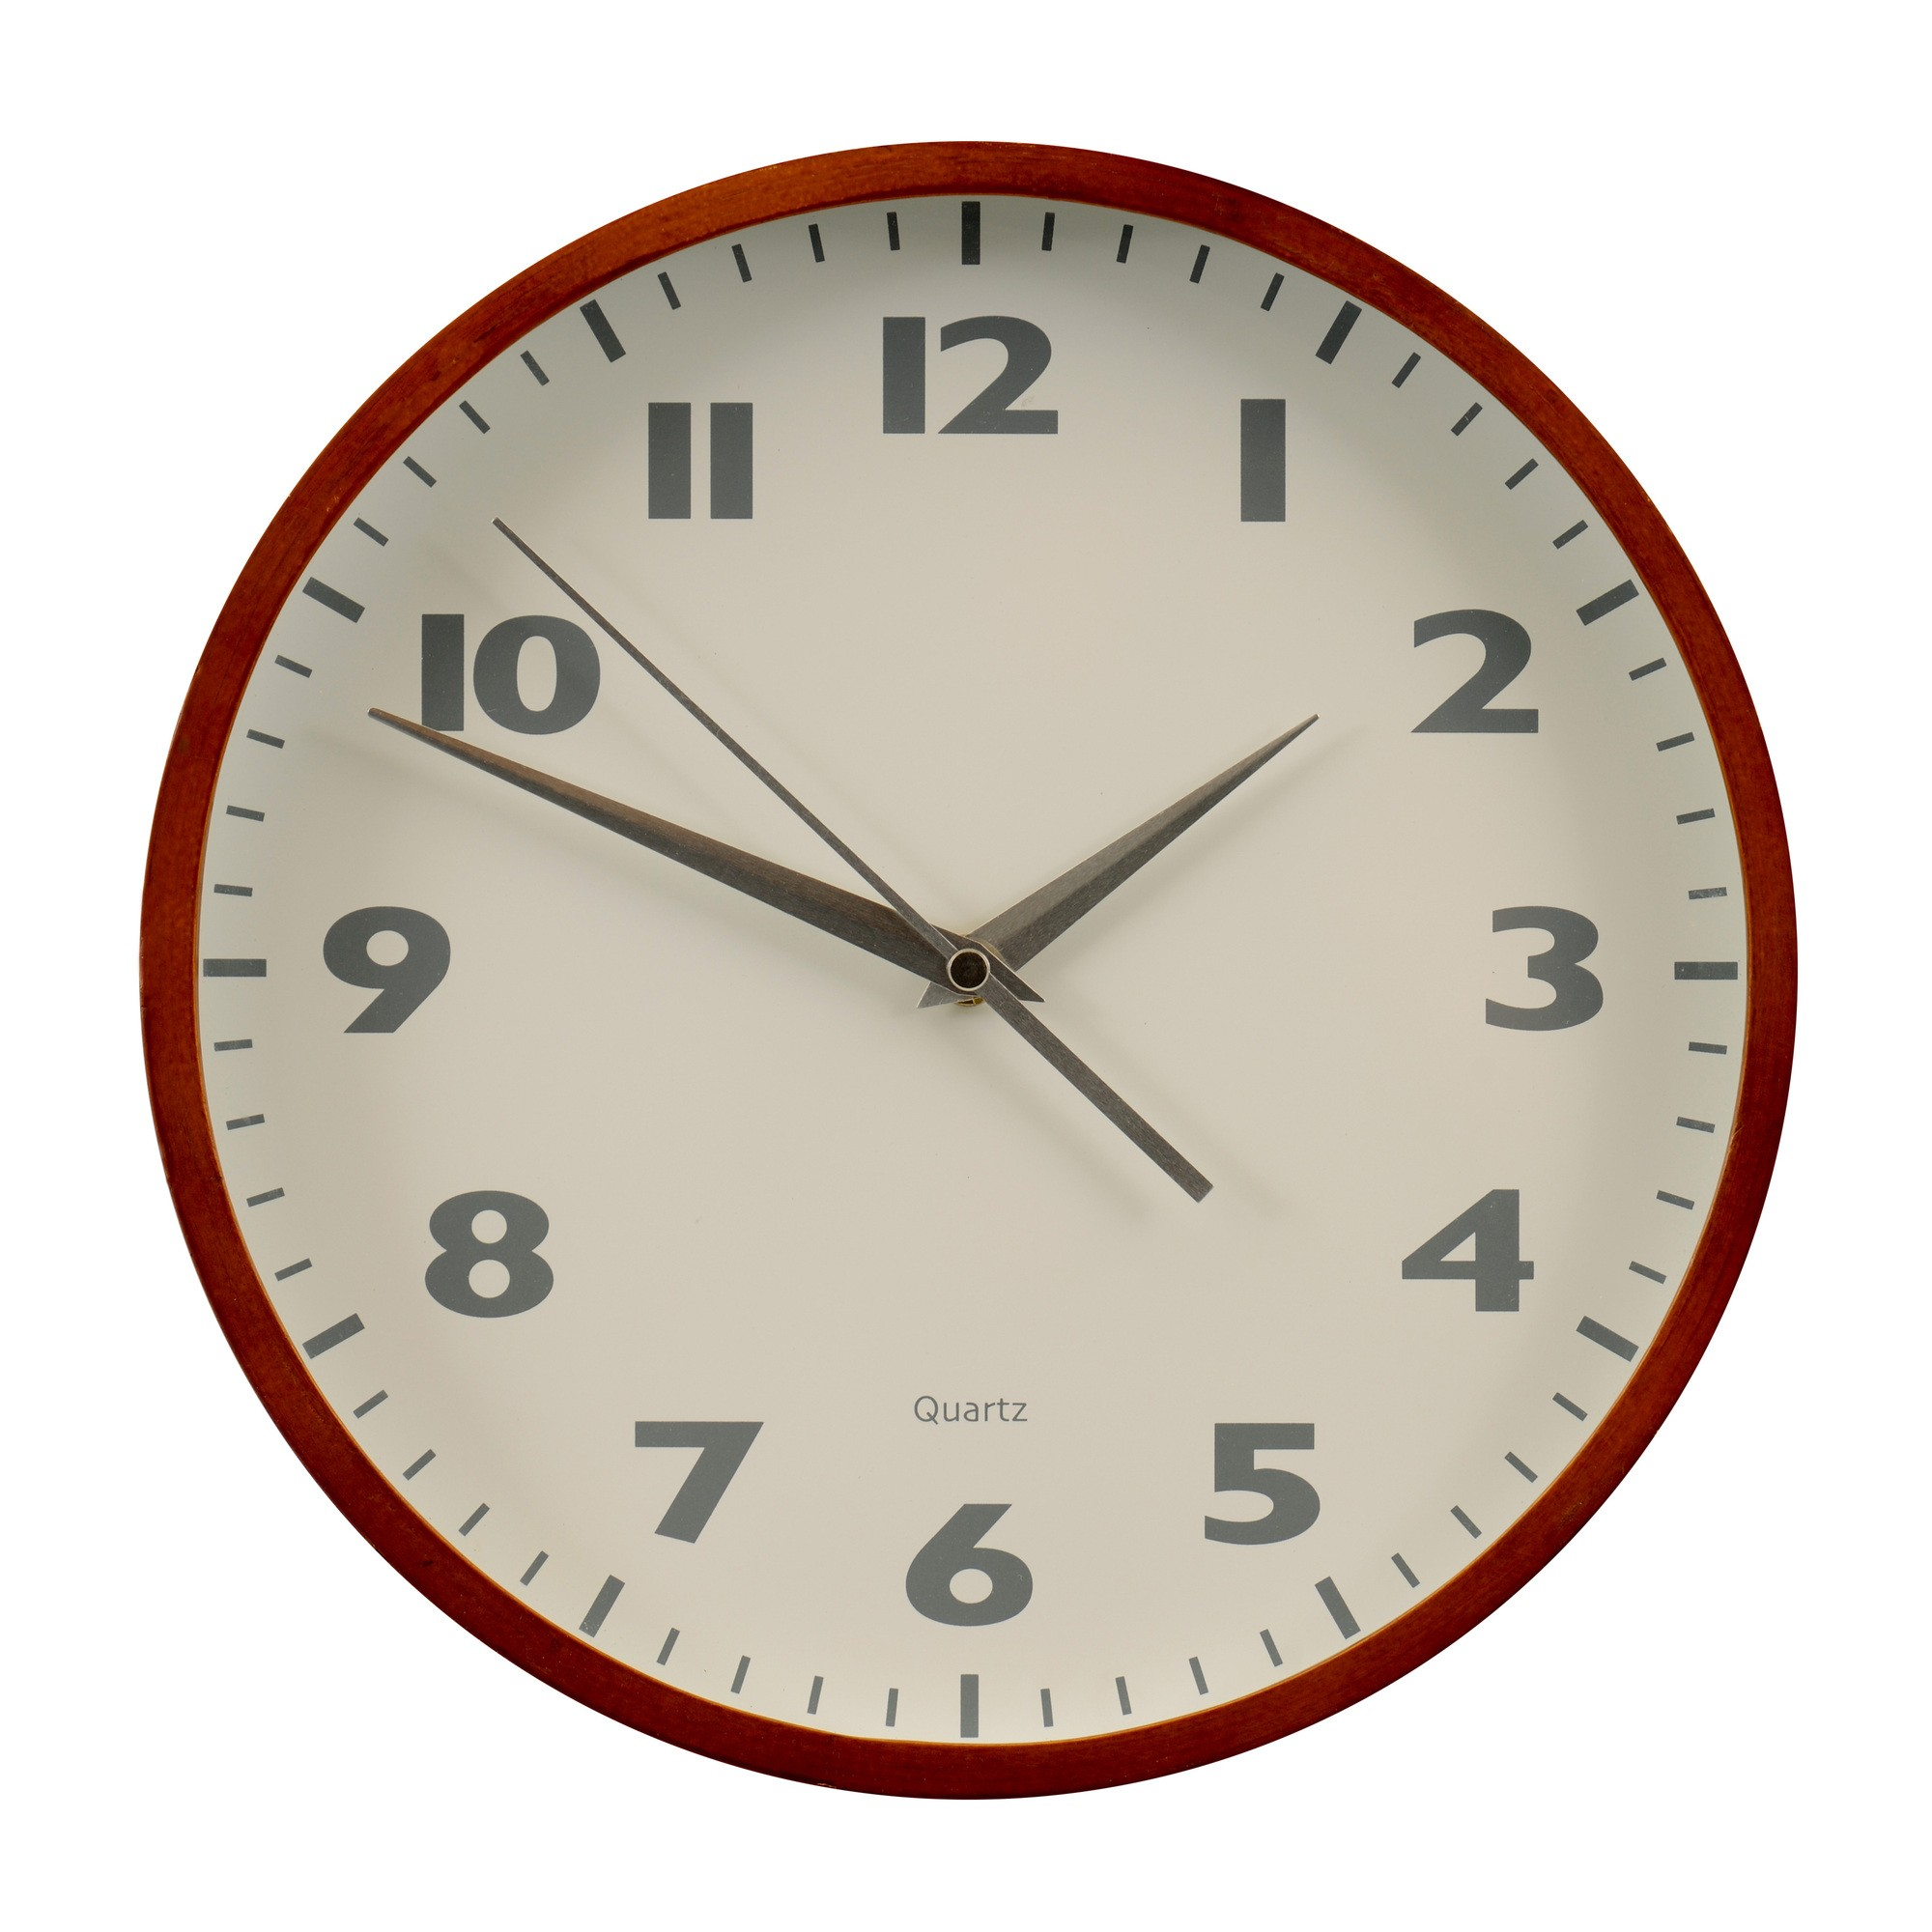 It's just a picture of Vibrant Clock Face Images